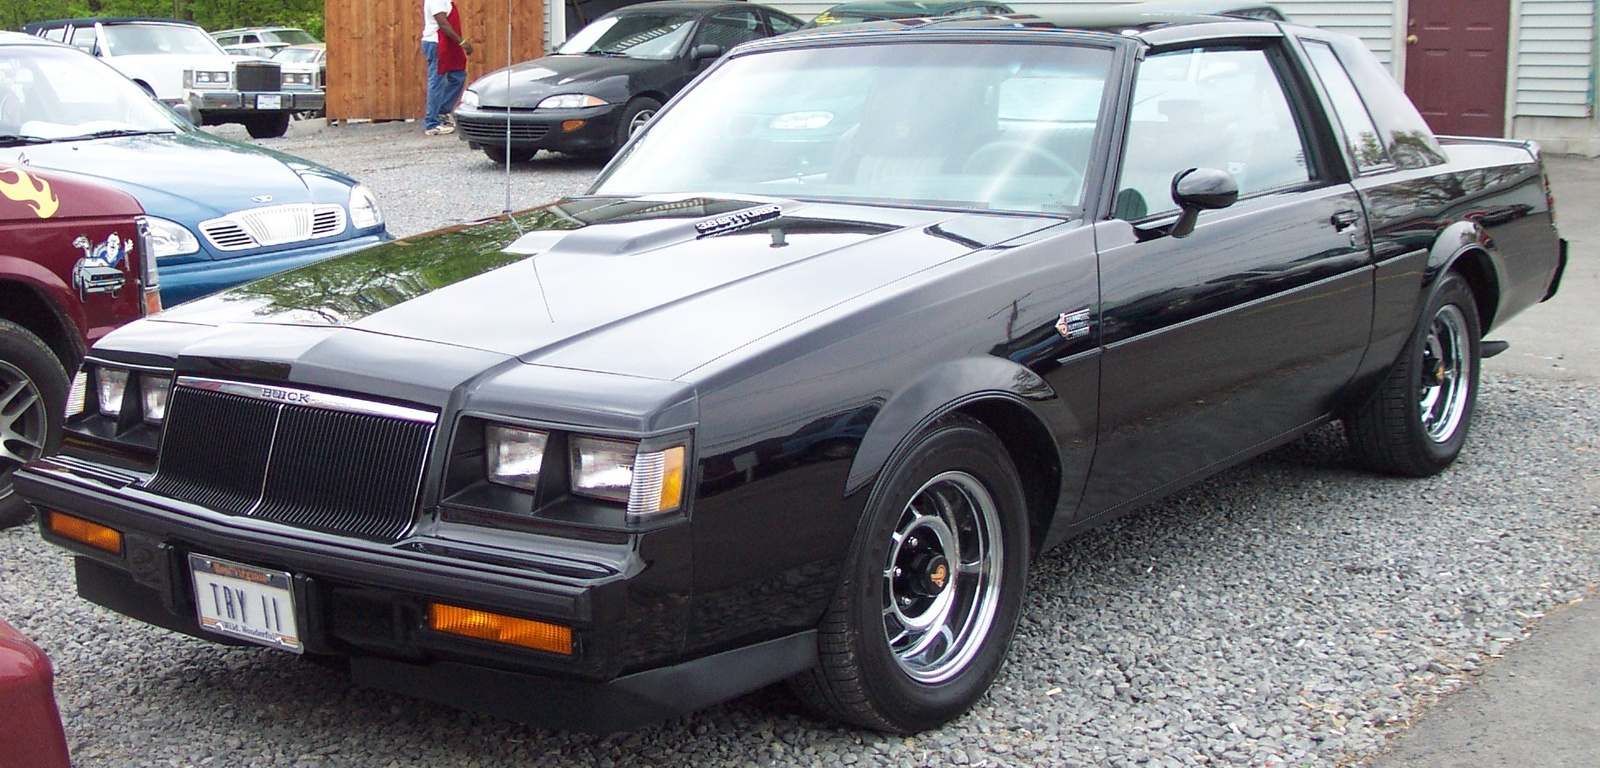 Buick Grand National Pic on 2004 Buick Lacrosse Cxs